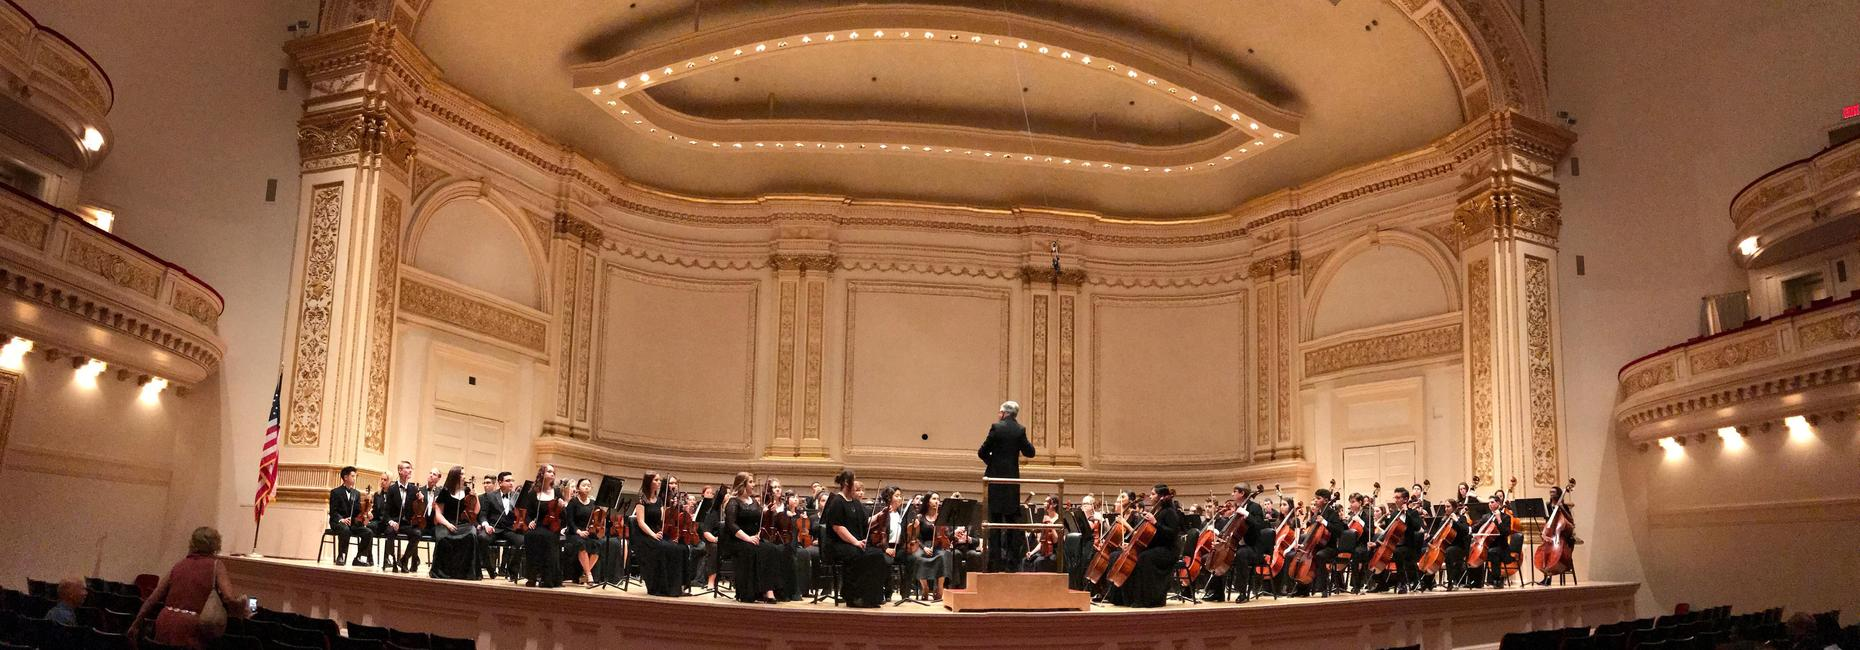 Orchestra at Carnegie Hall